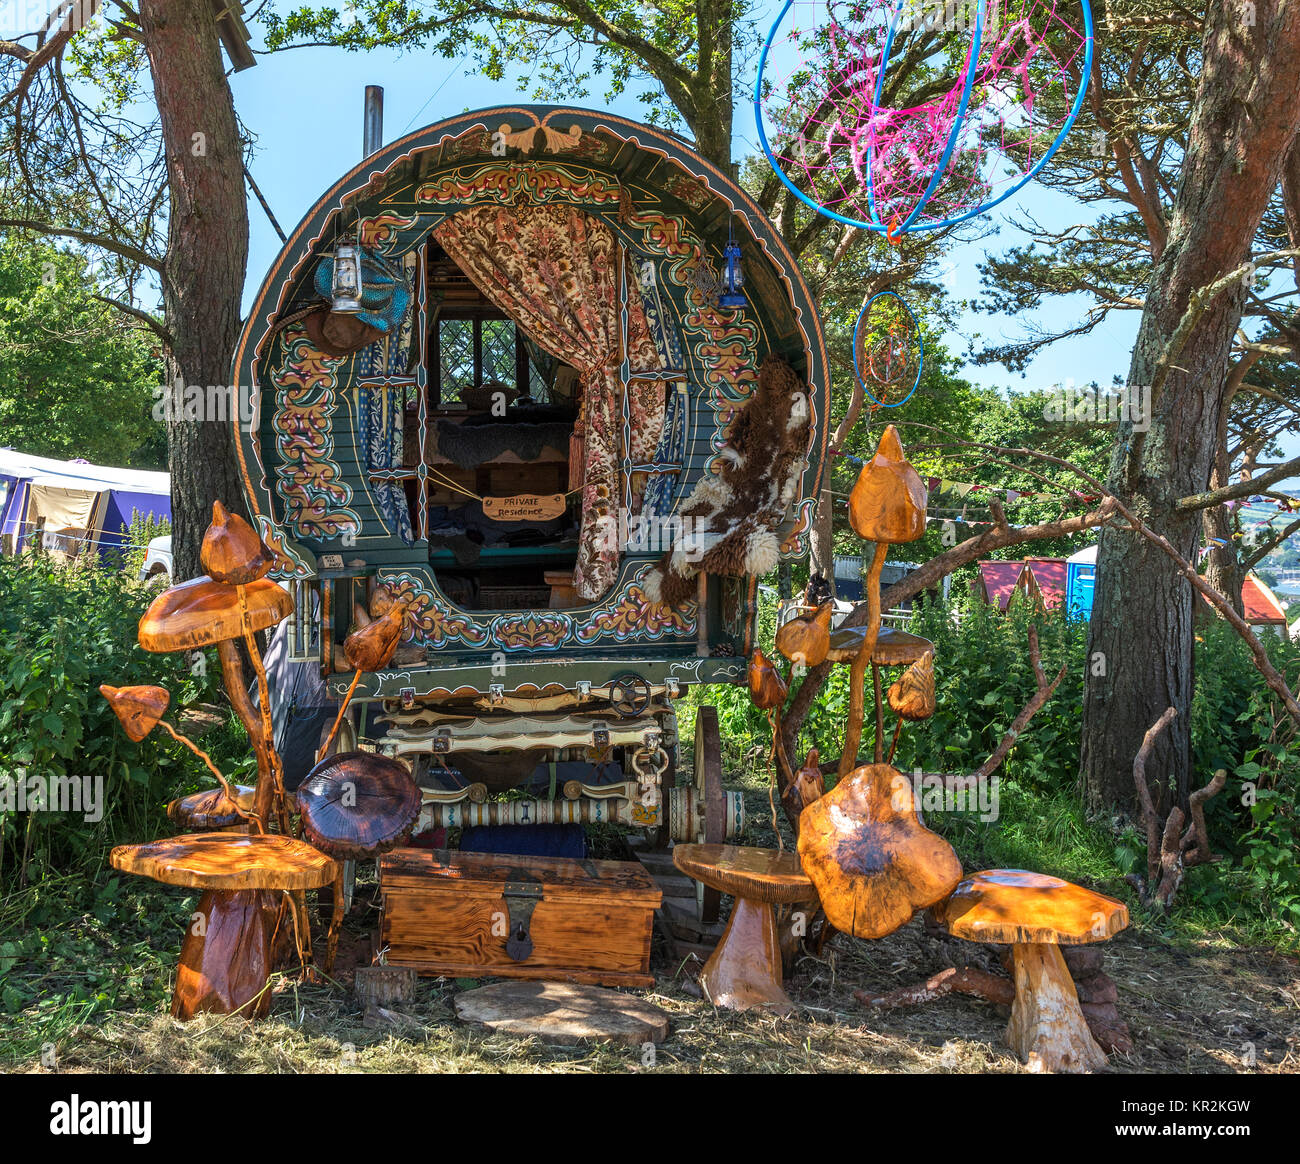 gypsy caravan with mushroom and toadstool wood carvings for sale. - Stock Image